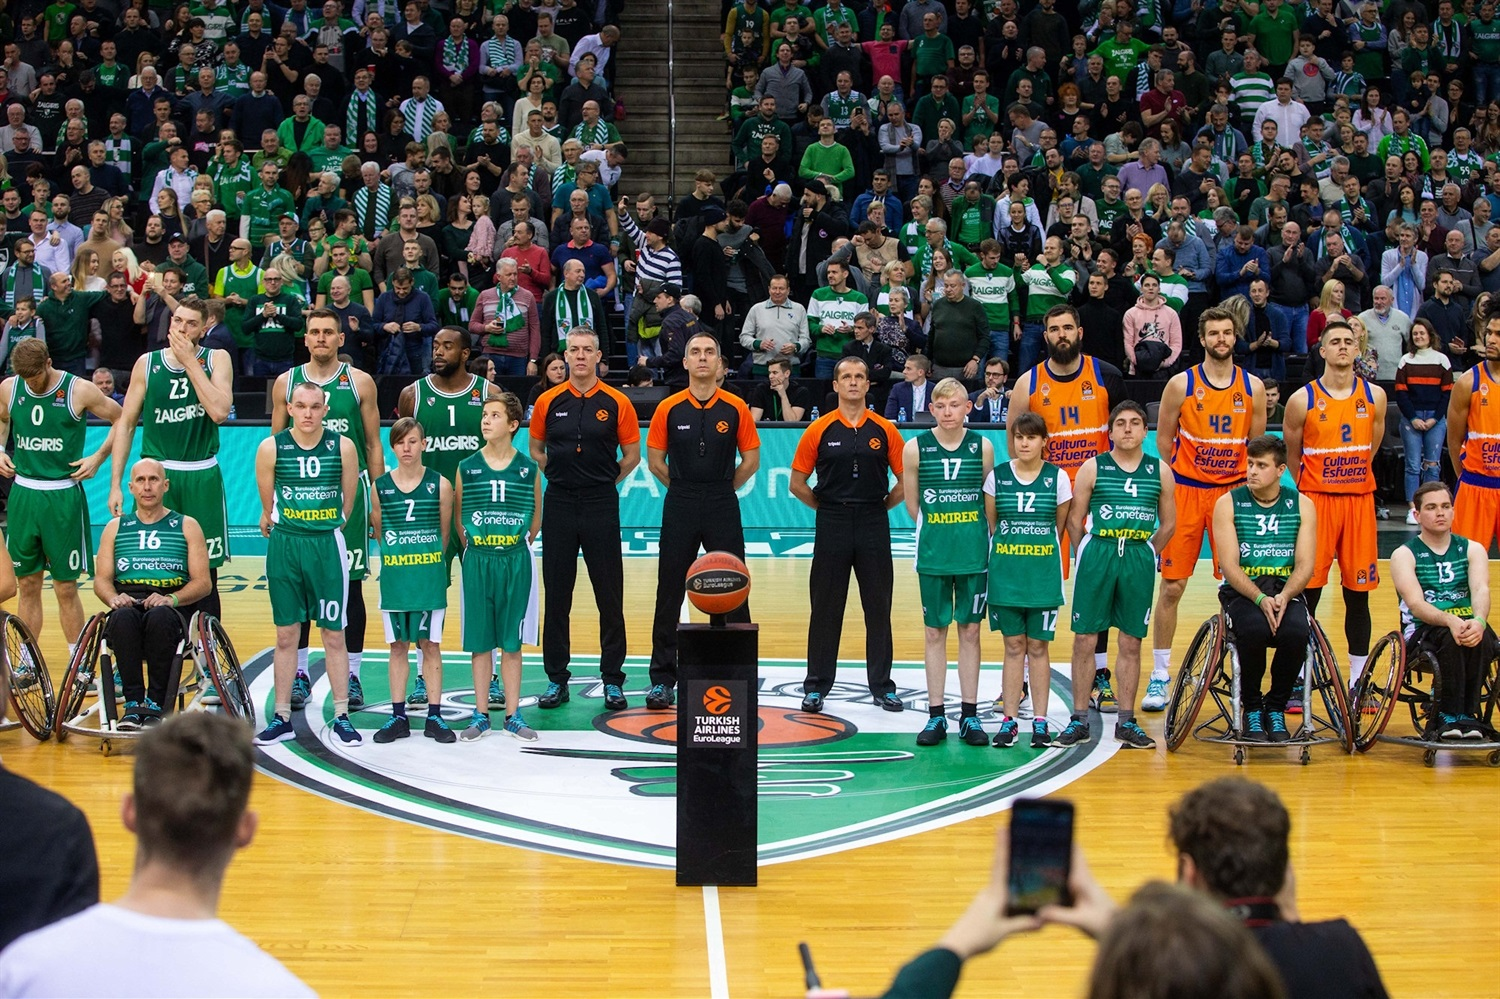 One Team Games - Zalgiris Kaunas vs. Valencia Basket - EB19_a94ataswwn7hvmtt